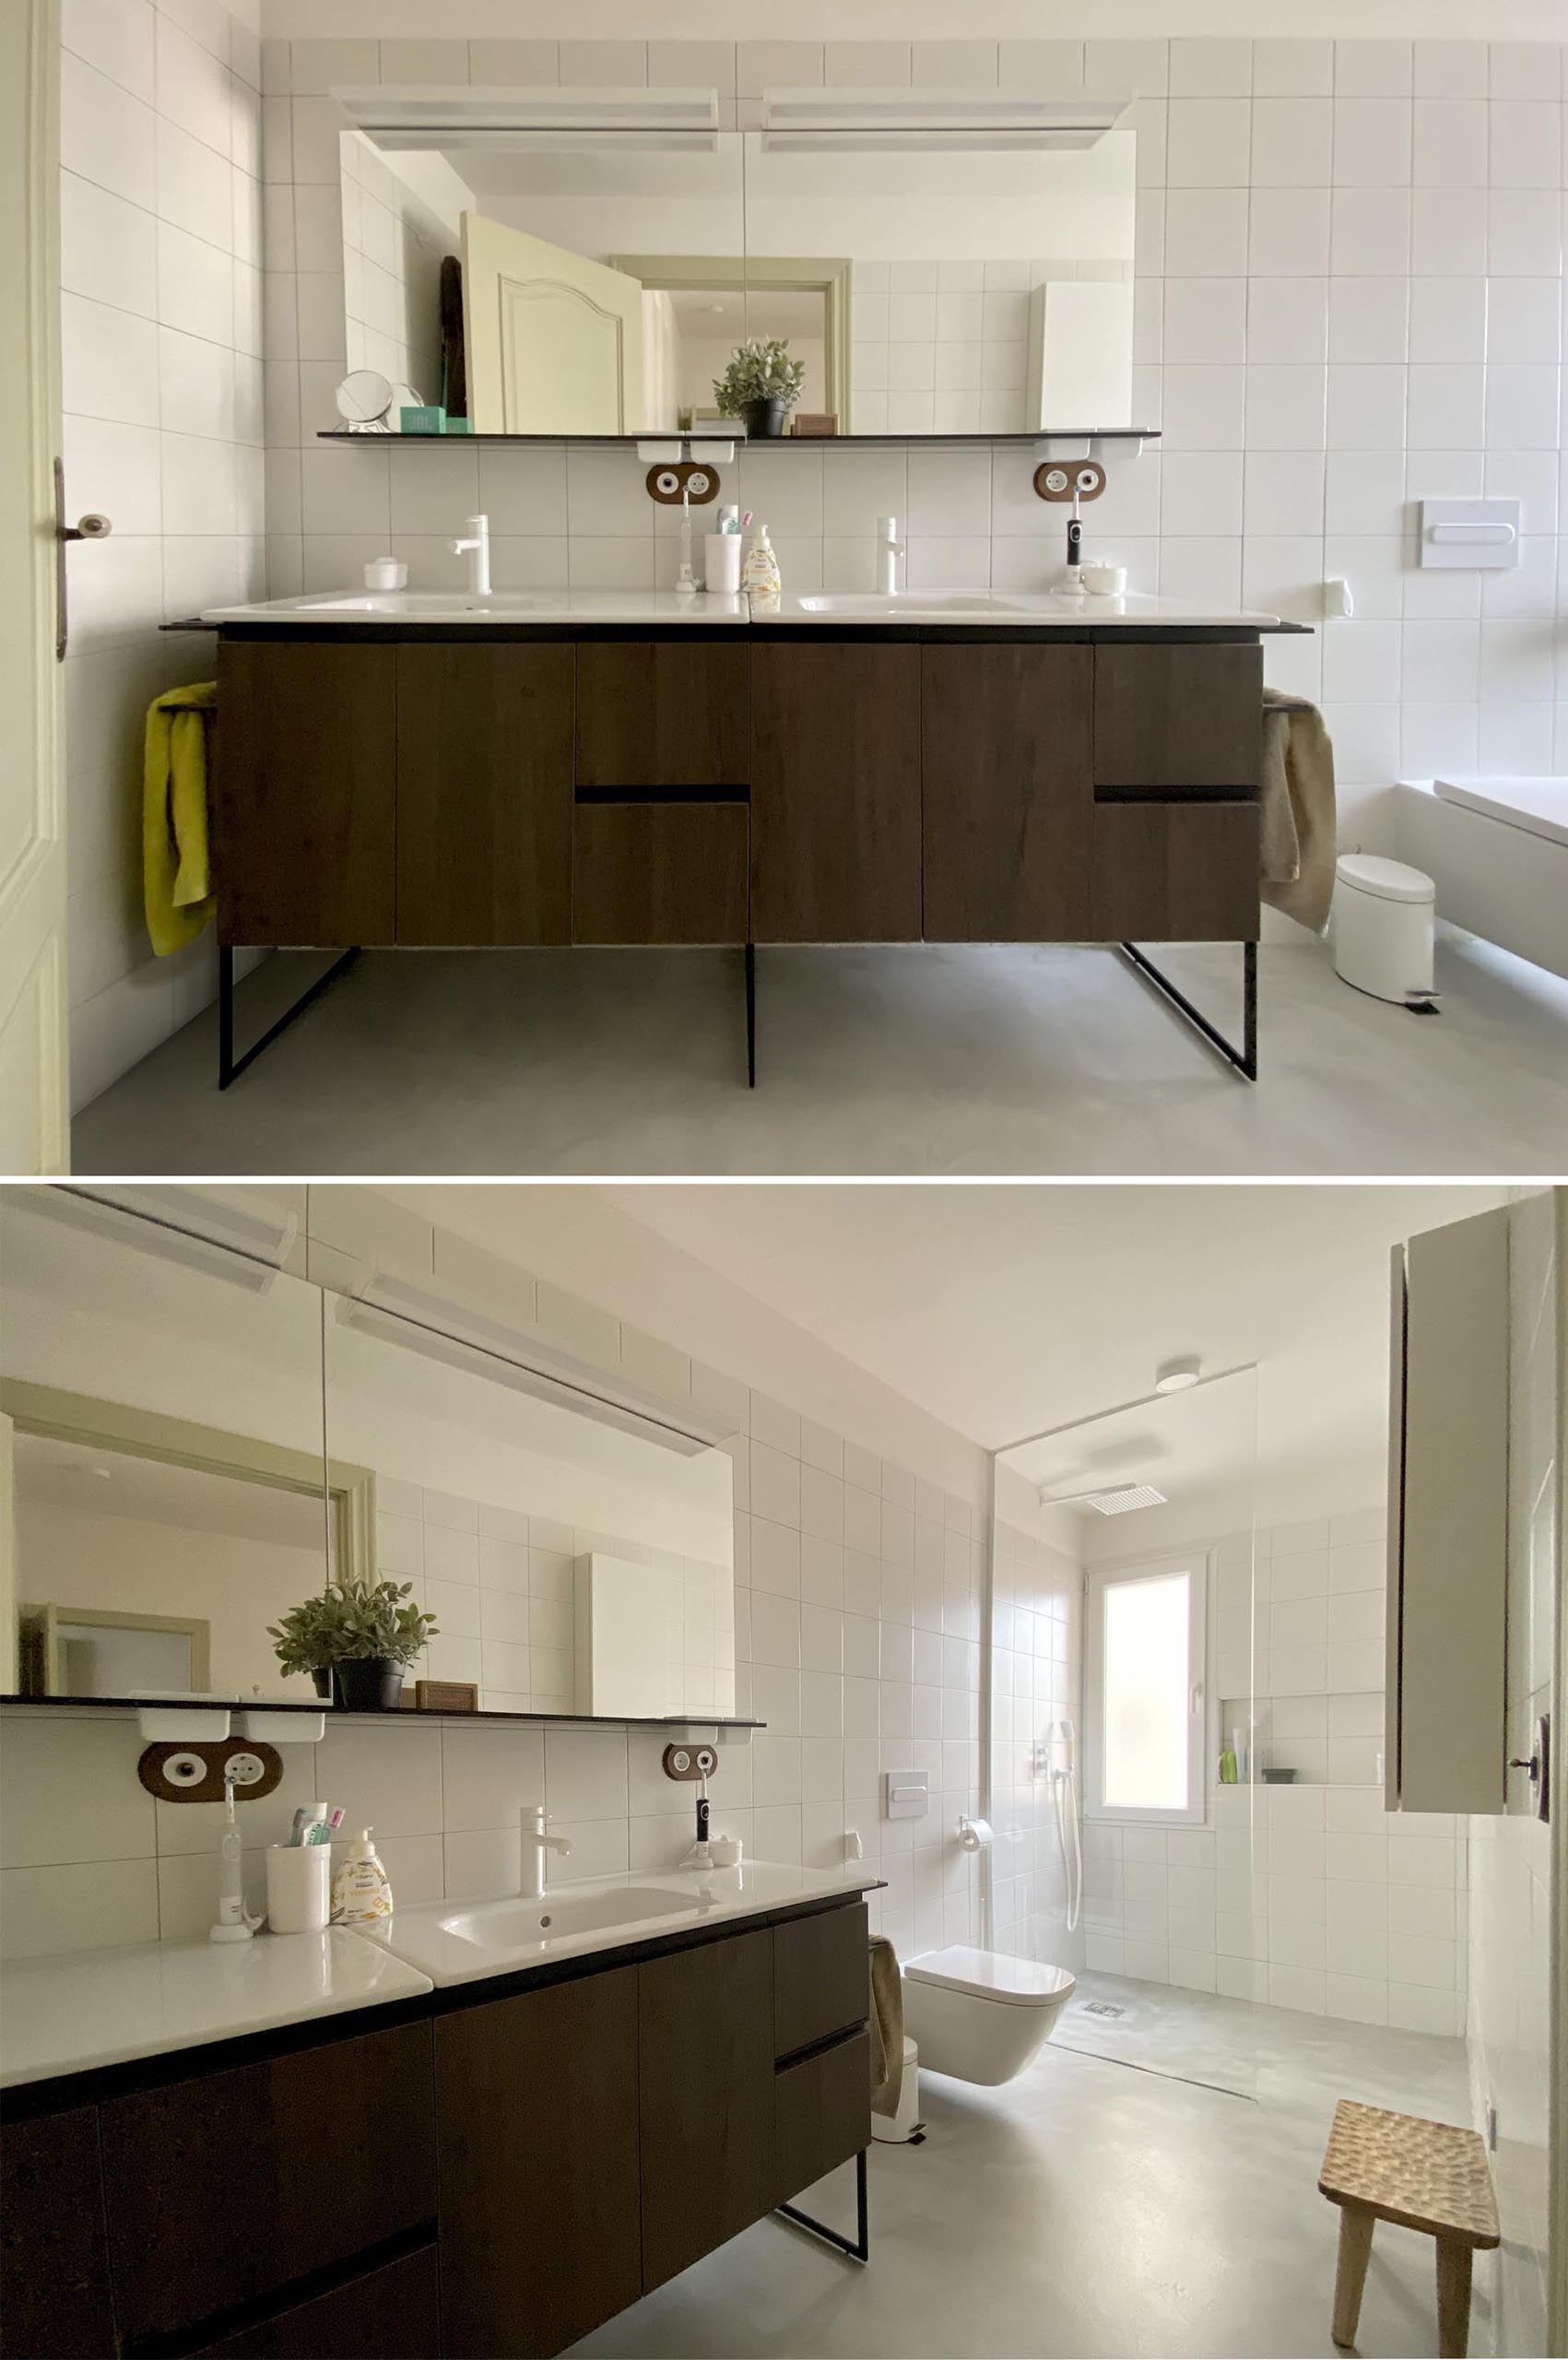 In the bathroom, a dark wood vanity is topped with dual sinks, while square white tiles cover the walls and shower.